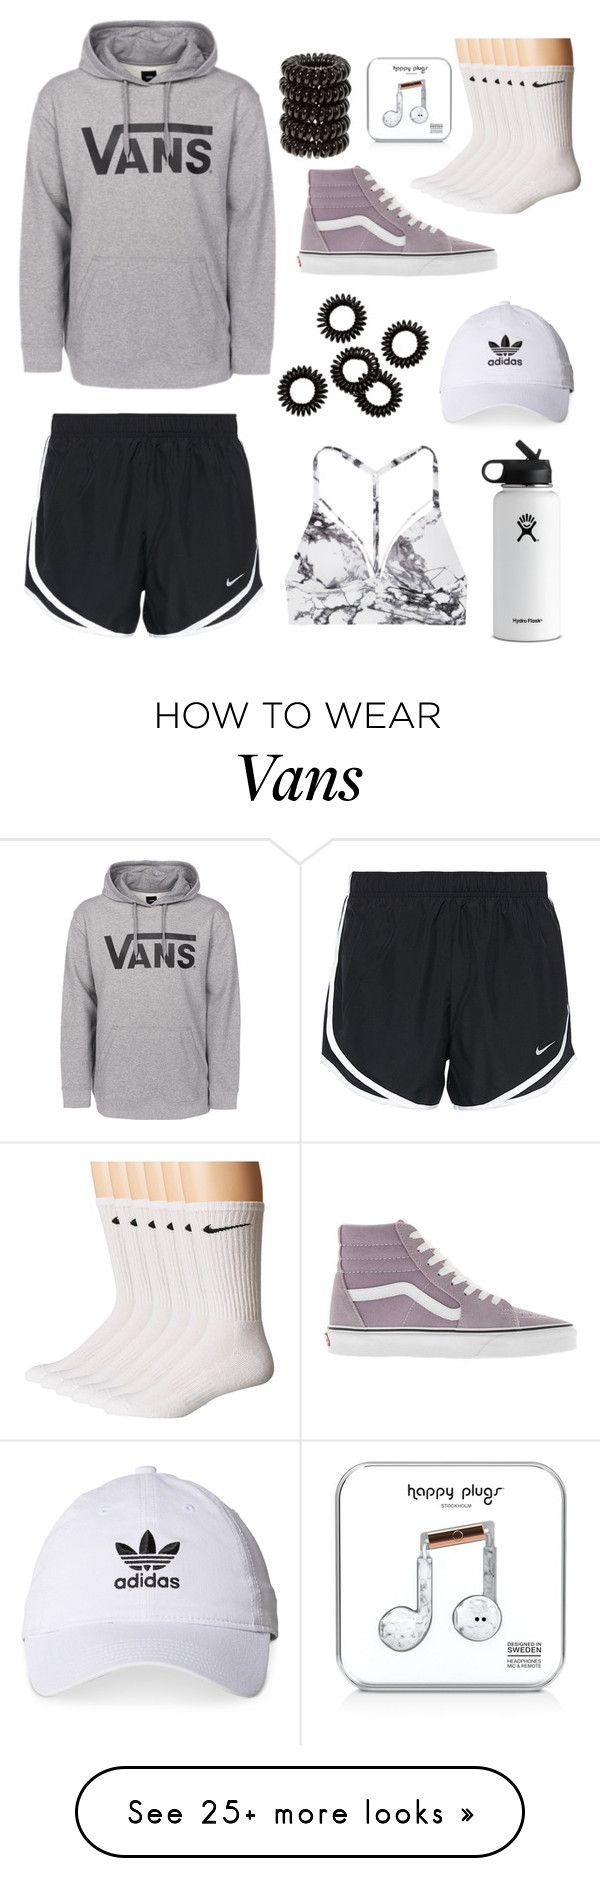 """""""I got the shoes and hoodie today :))"""" by melbiebarracko on Polyvore featuring Vans, Hydro Flask, adidas, NIKE, Happy Plugs and Victoria's Secret"""